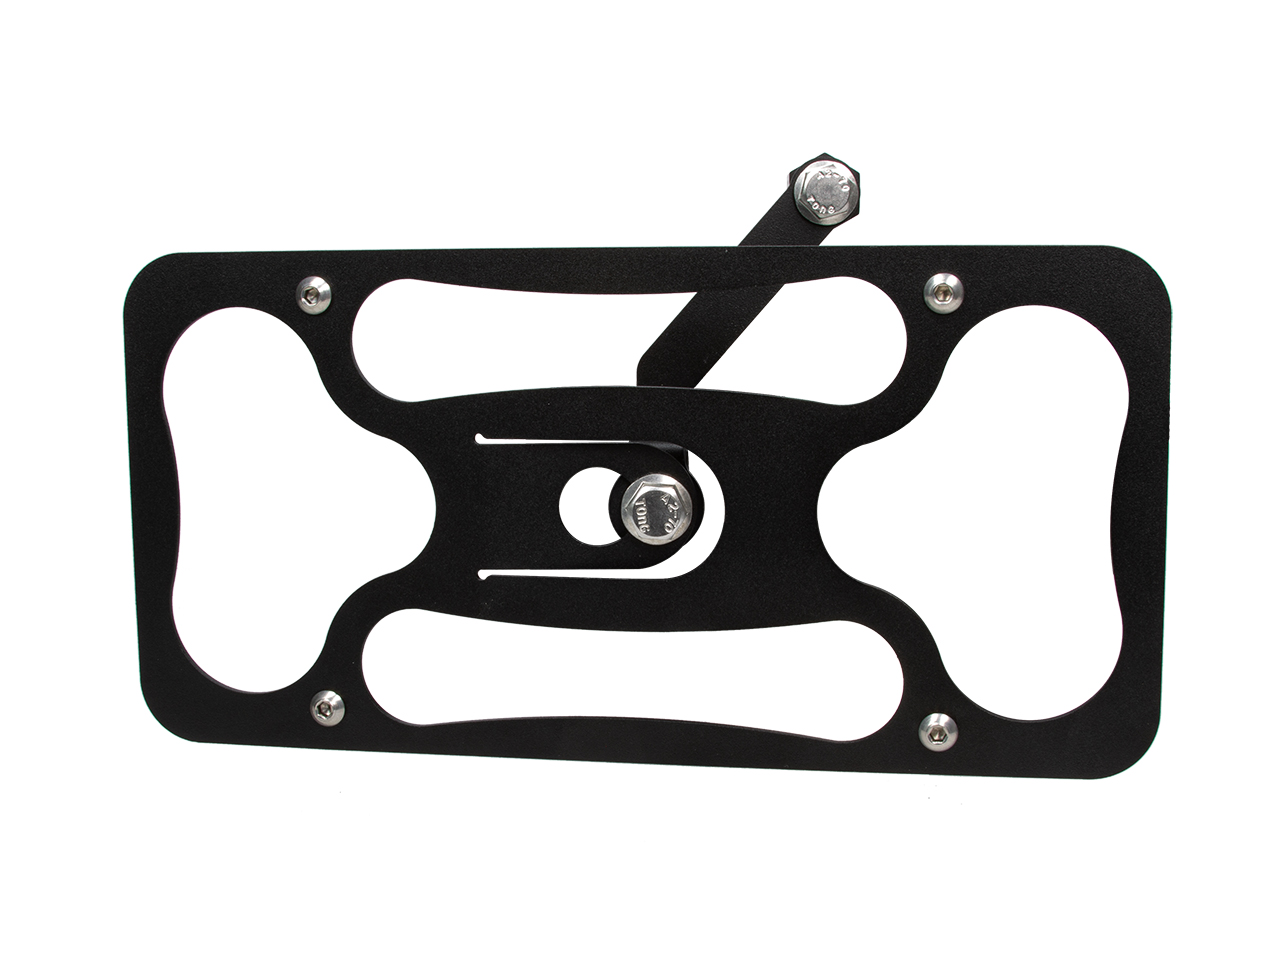 Thumbnail image for The Platypus License Plate Mount for 2016-2019 Mazda MX-5 Miata